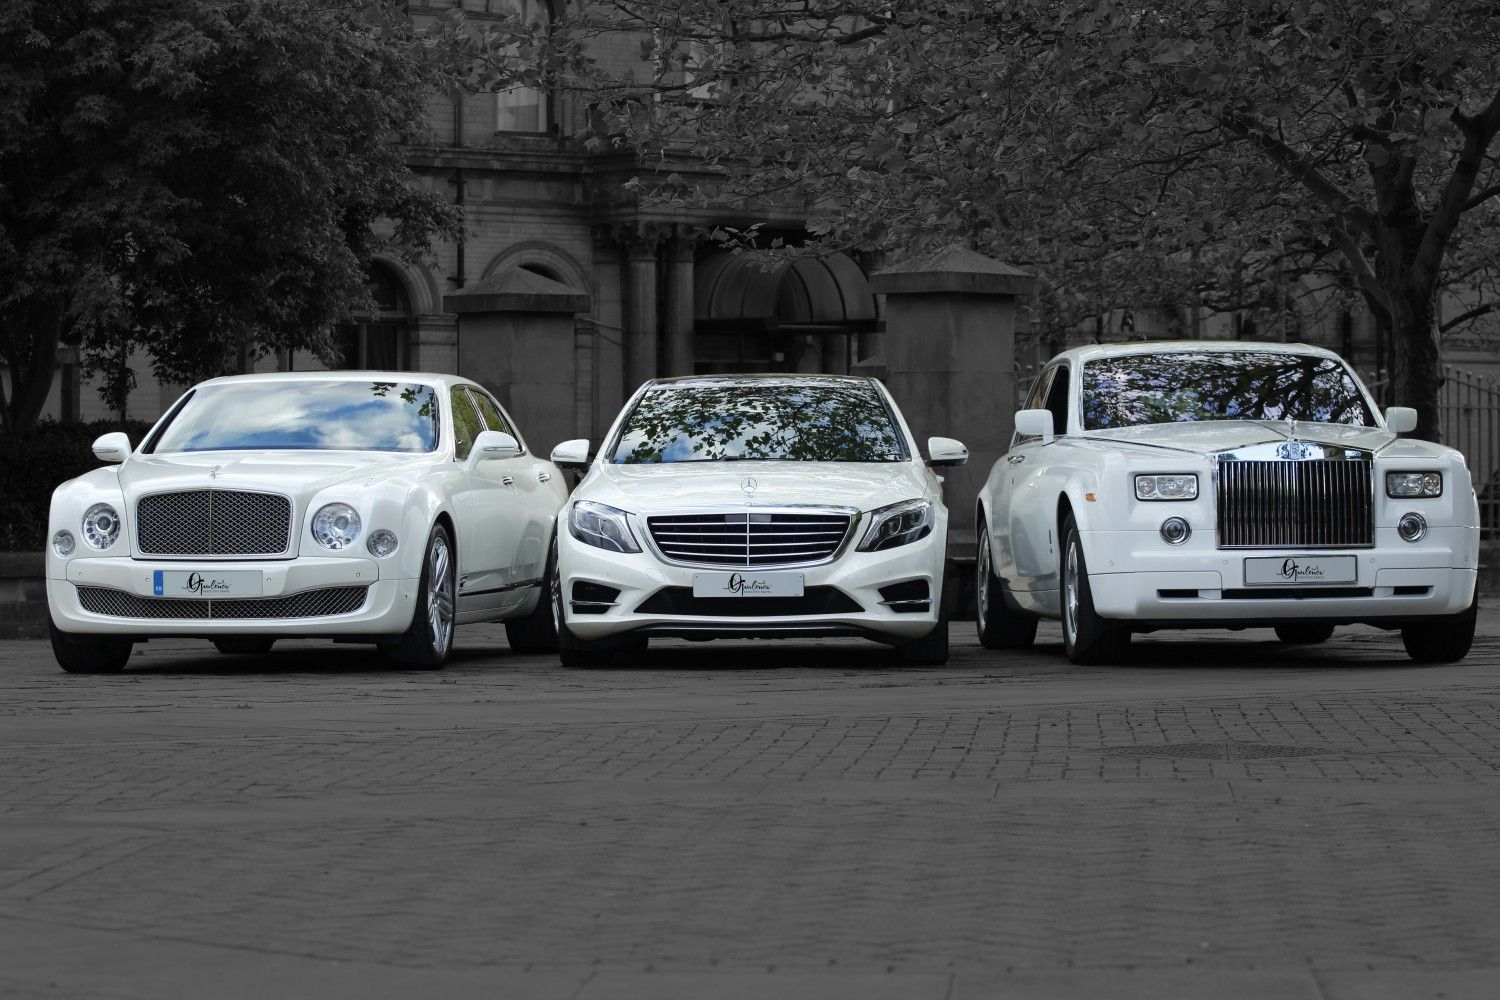 If Someone Wants Prom Cars Hire At Cheap Price For Prom Night In